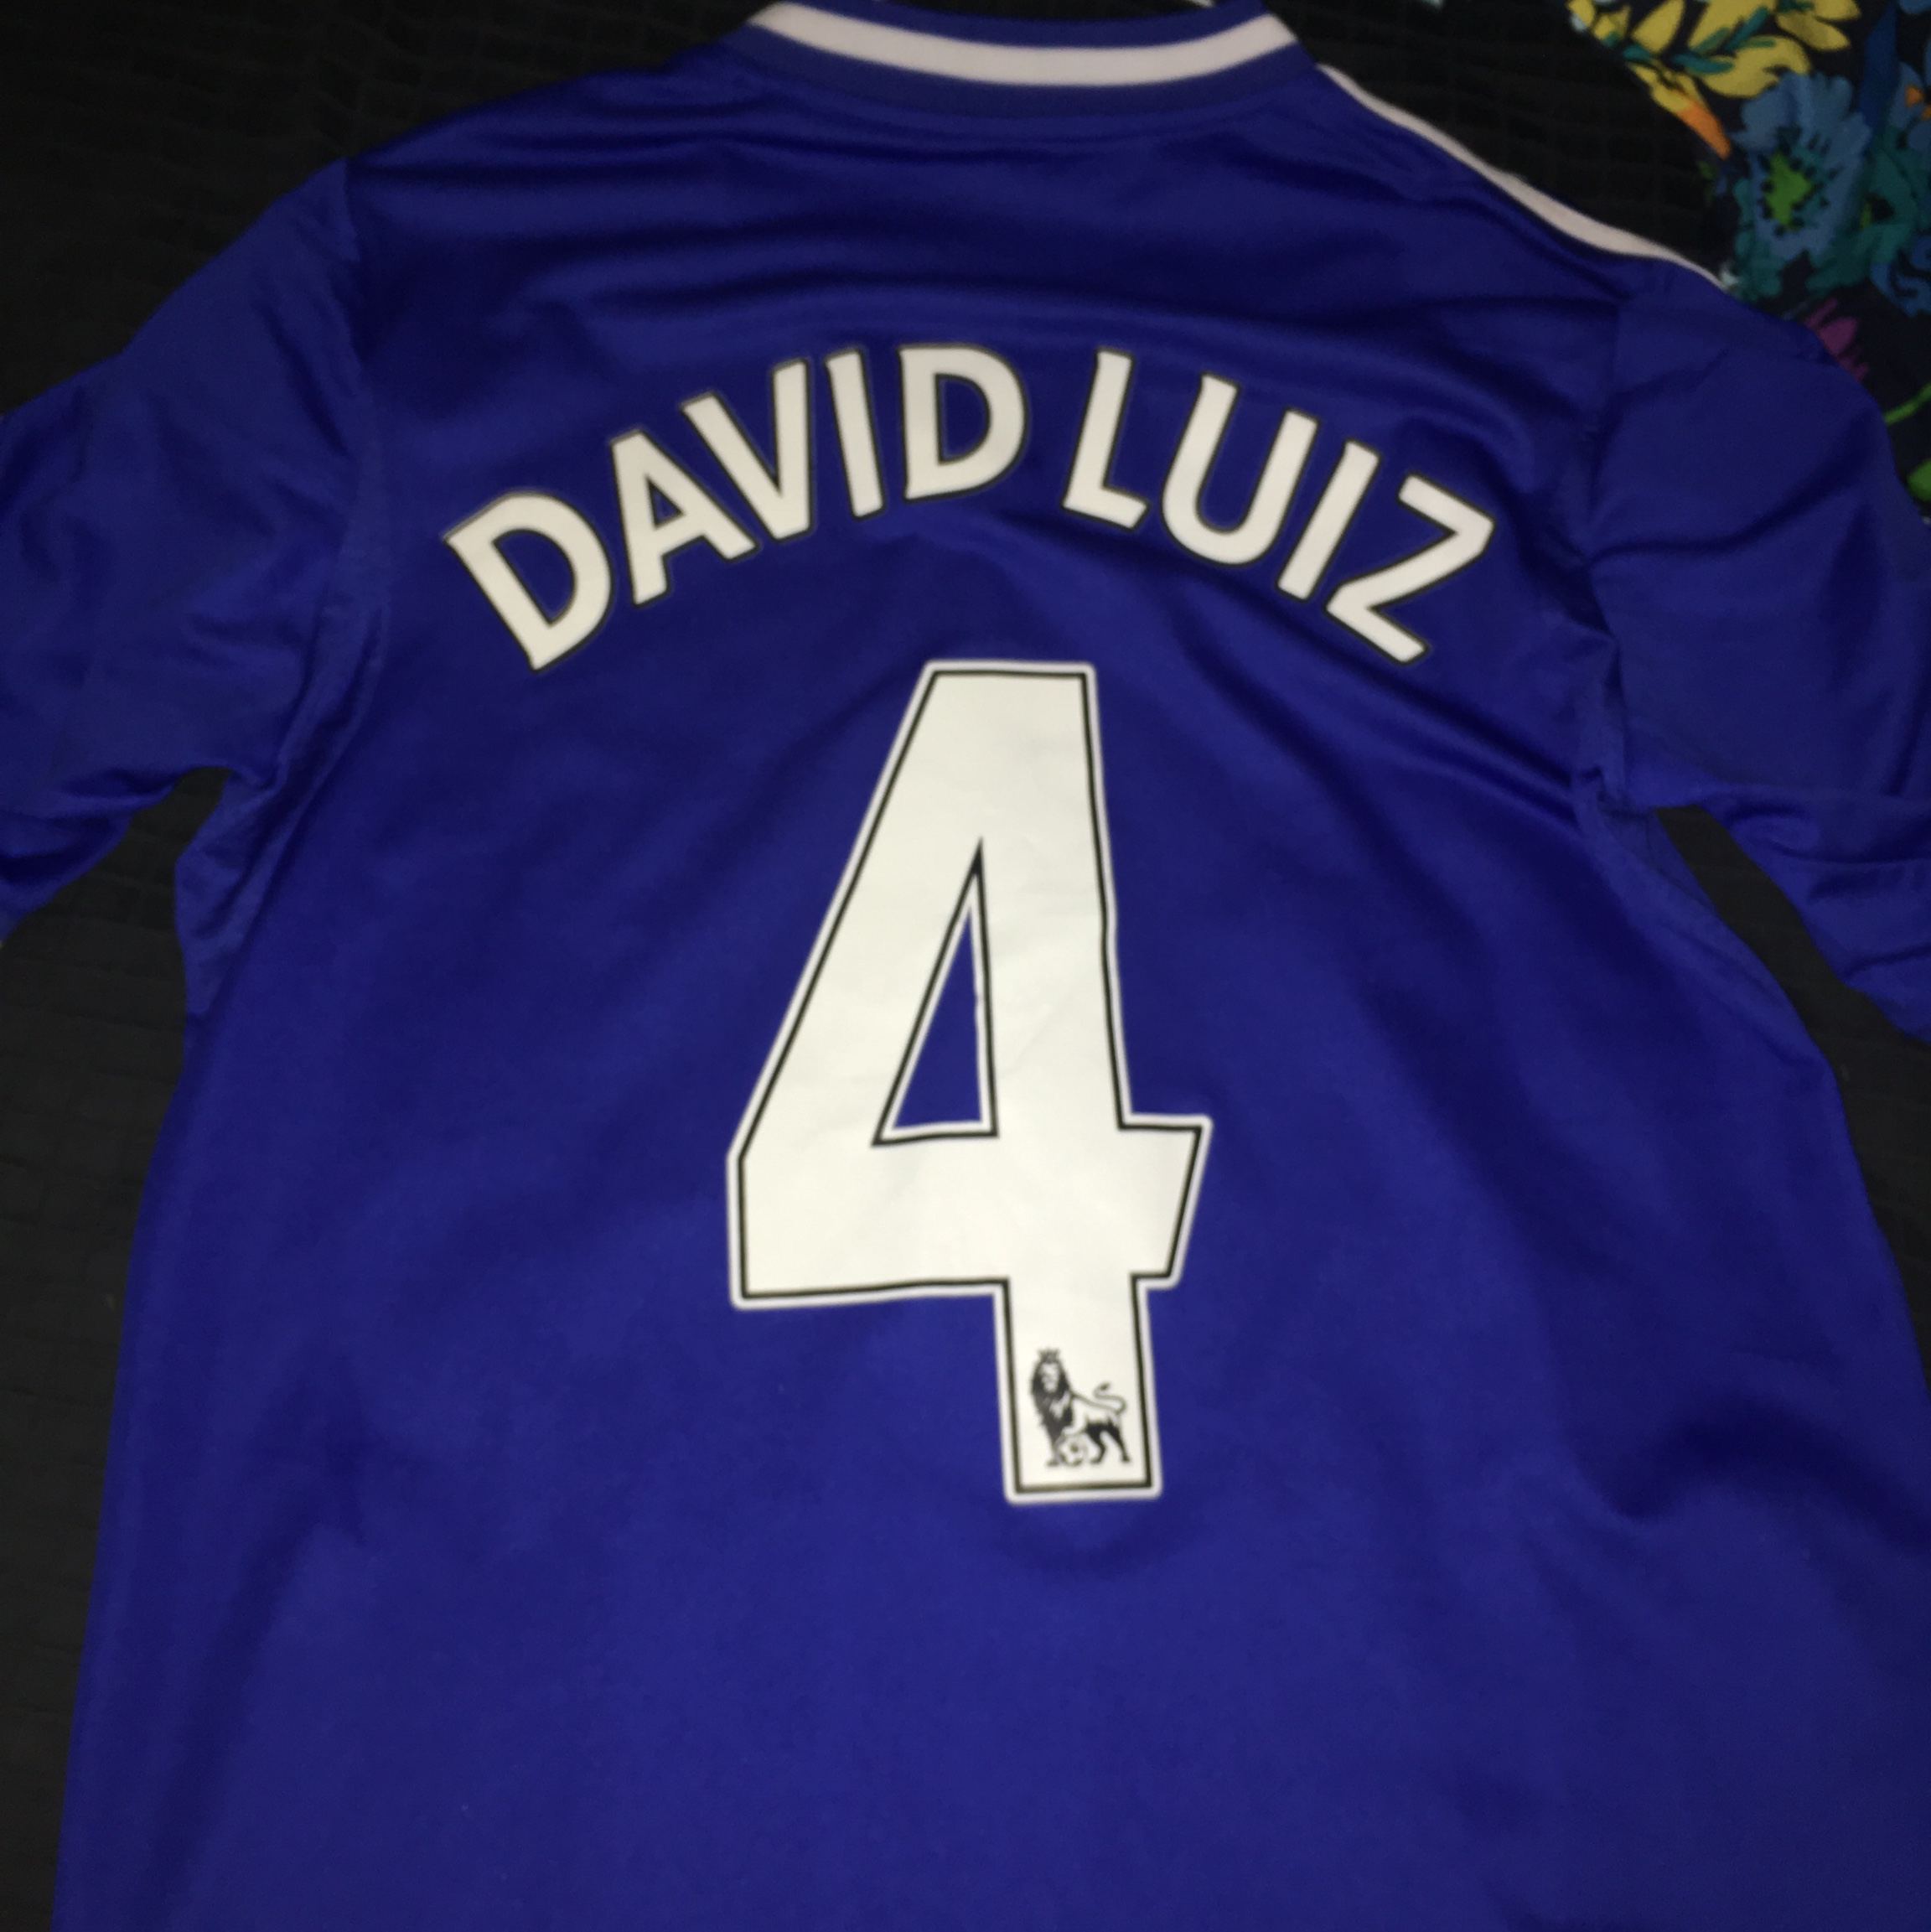 best sneakers b8a93 19439 David Luiz Jersey, my favorite player and its a dope... - Depop